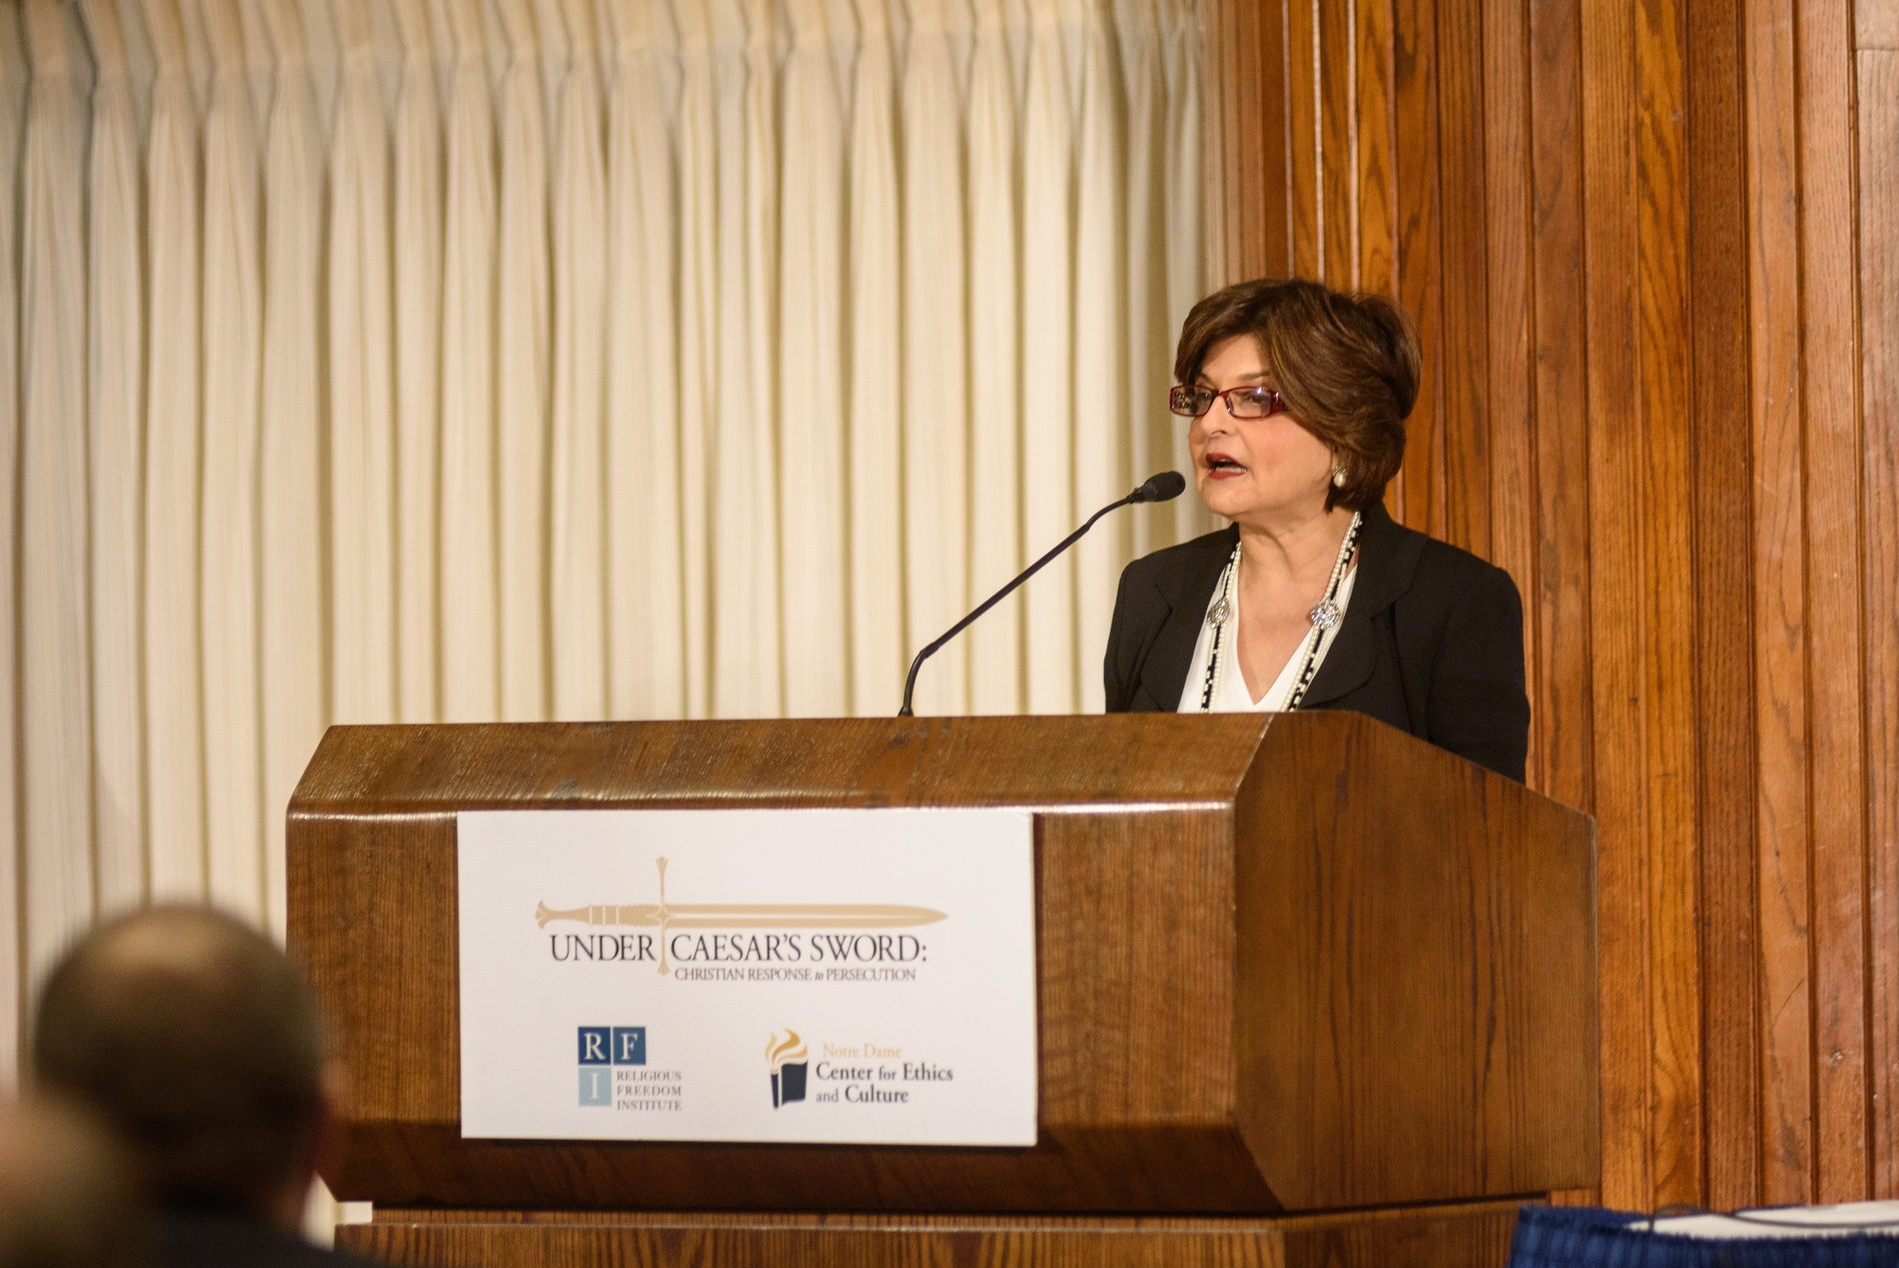 """Farahnaz Ispahani delivers a keynote address on Pakistan's treatment of religious minorities at the Under Caesar's Sword project symposium """"What is to be Done? Responding to the Persecution of Christians,"""" April, 20, 2017. Photo: Nathan Mitchell Photography"""